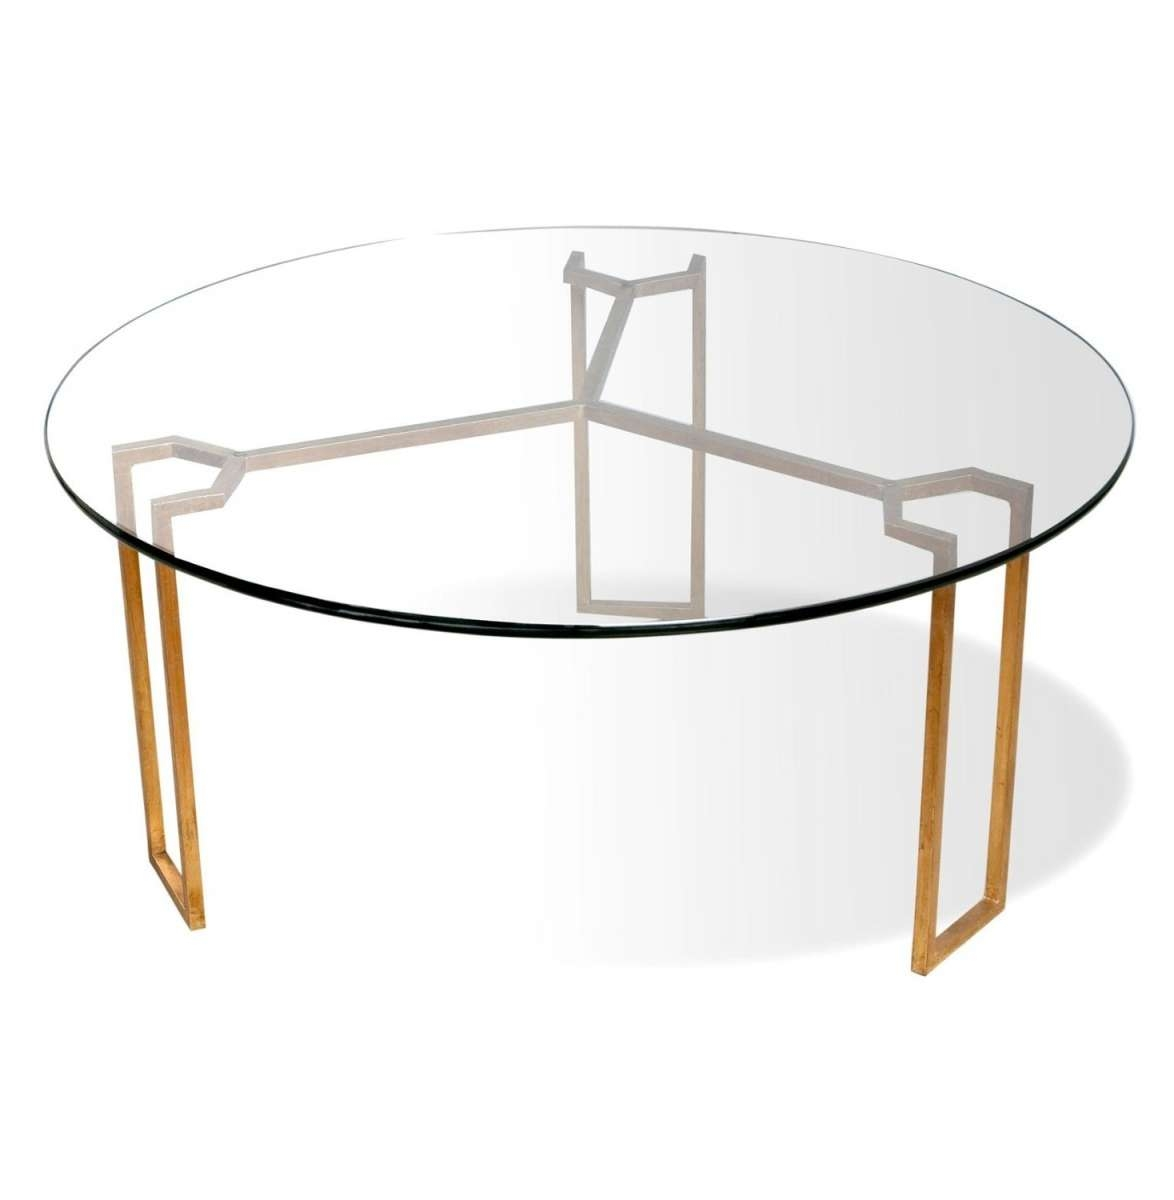 Furniture: Glass Contemporary Round Coffee Tables With Gold Metal Inside Best And Newest Glass Circle Coffee Tables (View 5 of 20)